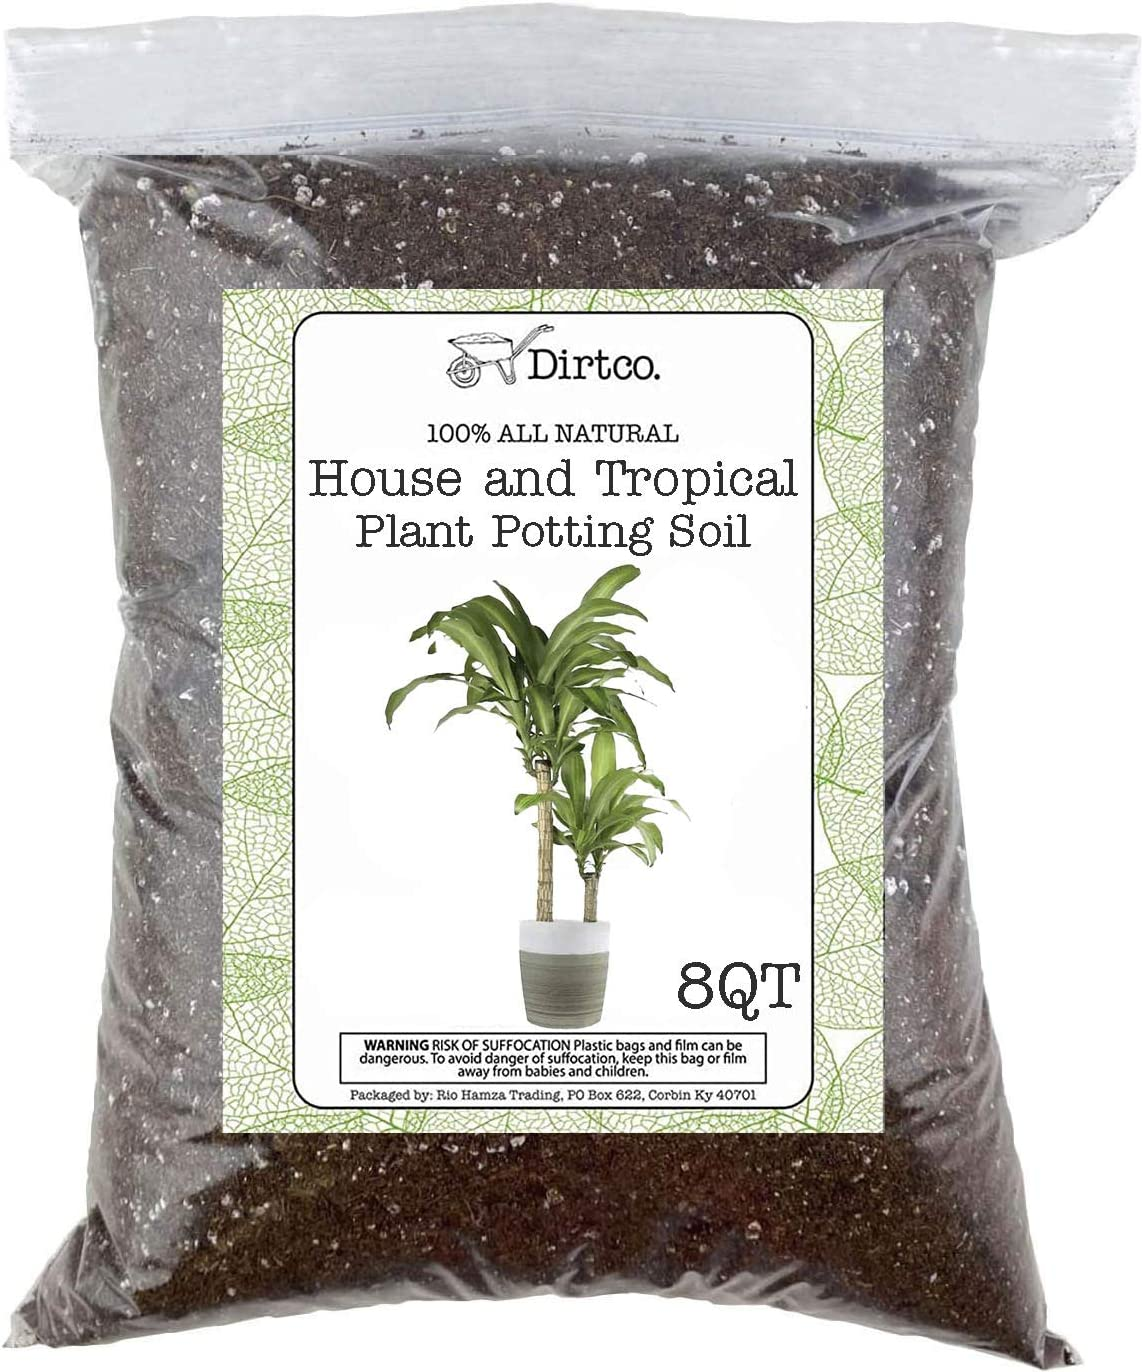 Re-Potting Soil for All Types of Indoor House Plants House Plant Re-Potting Soil House Plant and Tropical Plant Potting Soil 8qt